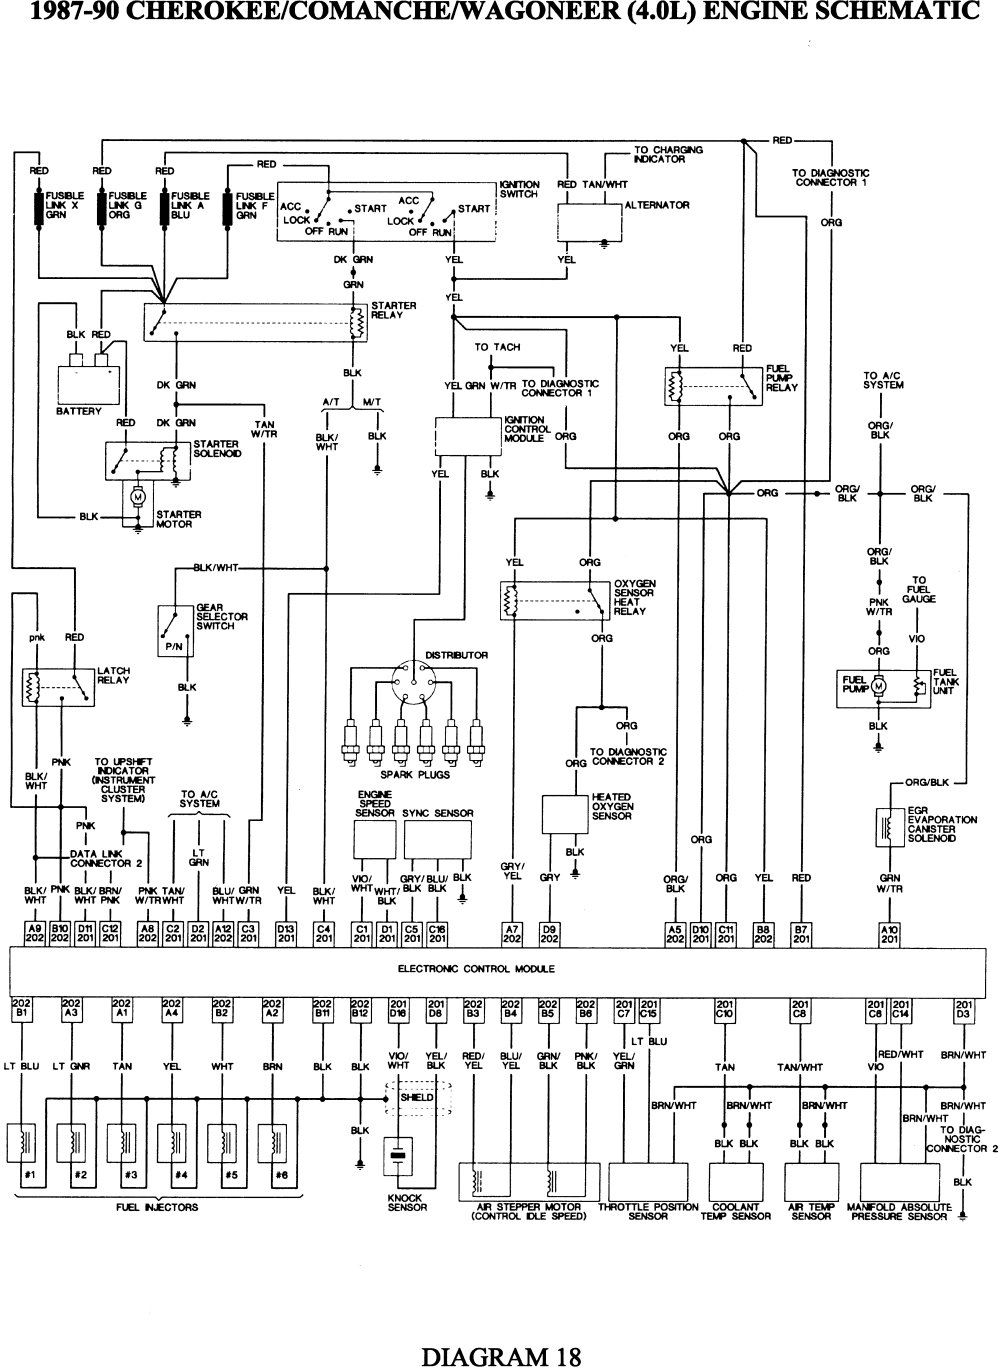 hight resolution of 2001 jeep cherokee engine wiring diagram wiring diagram name wiring diagram for jeep cherokee wiring diagram for jeep cherokee